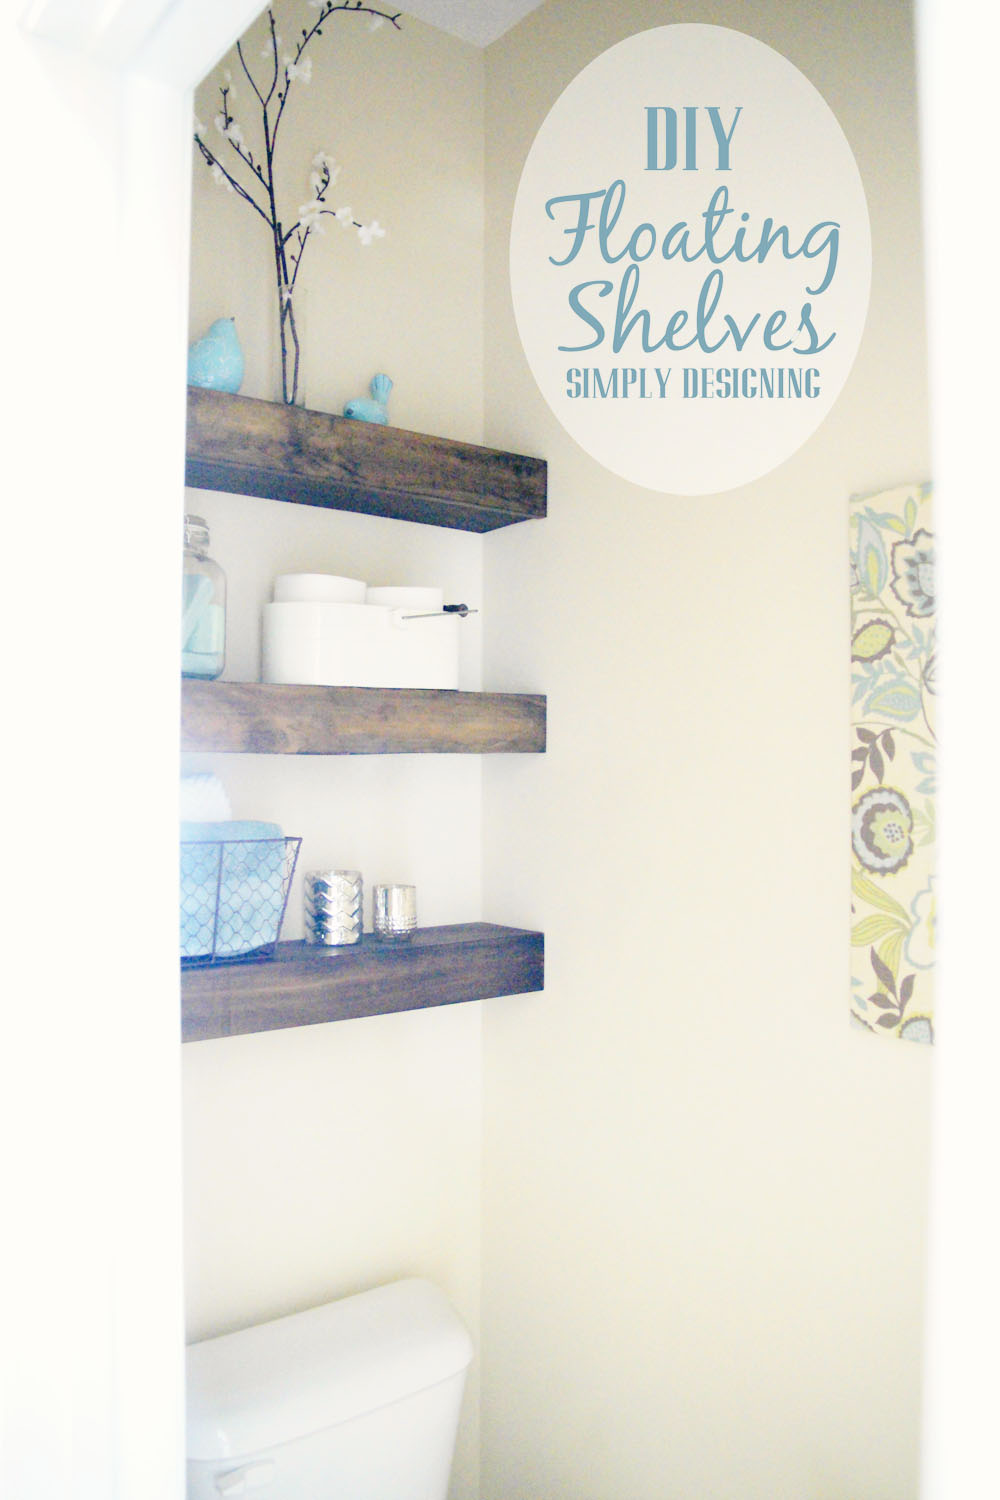 DIY Floating Shelves- How to Measure, Cut, and Install